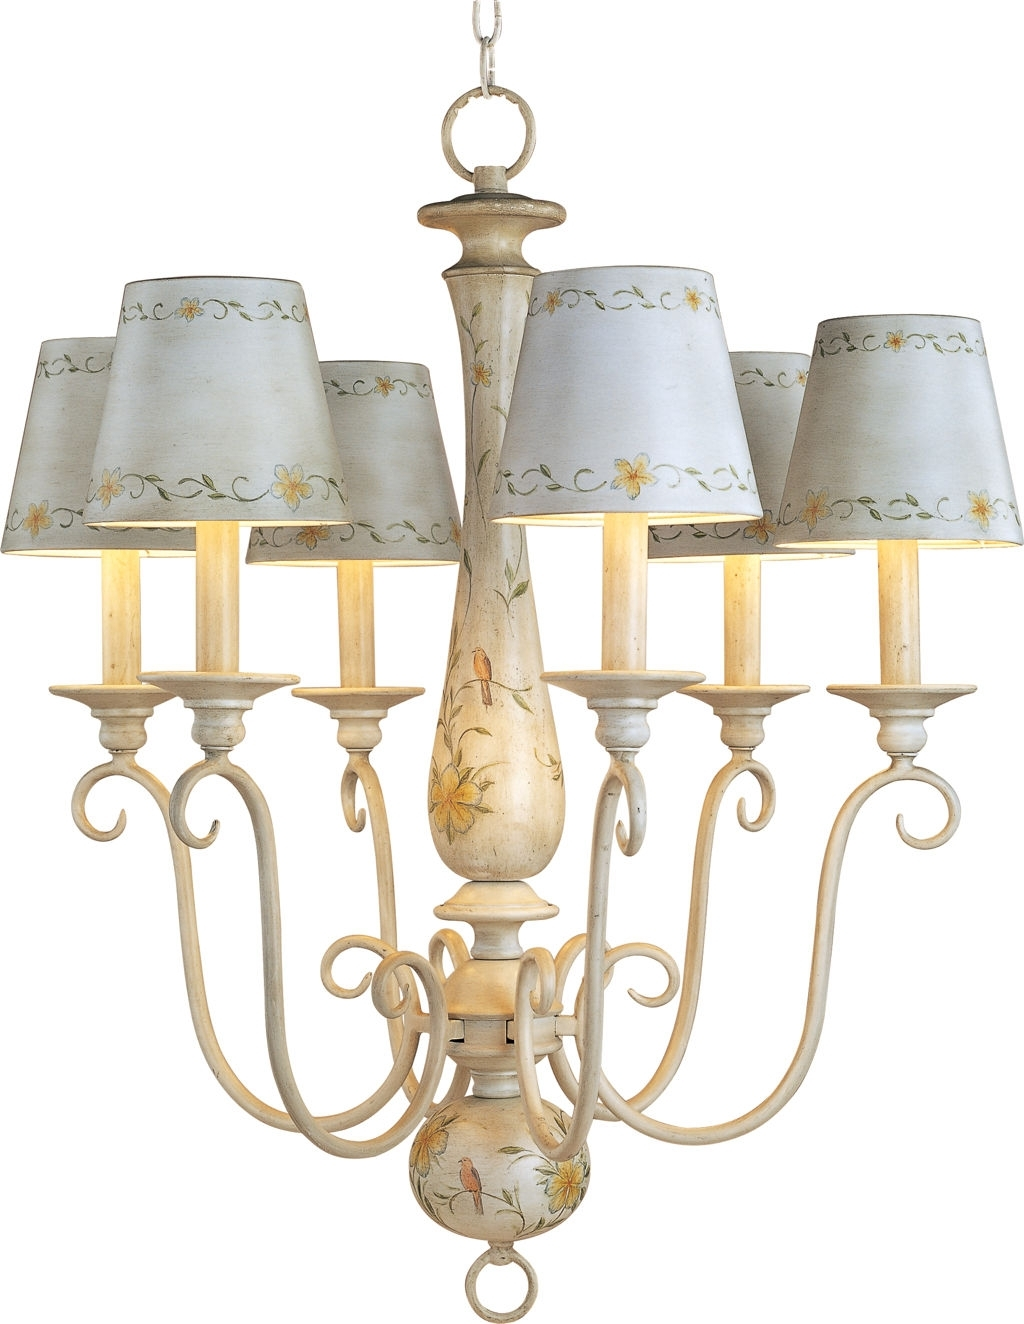 Furniture : Inspiring Chandelier Lampshades Set Candles On The Intended For Trendy Chandelier Lampshades (View 6 of 20)